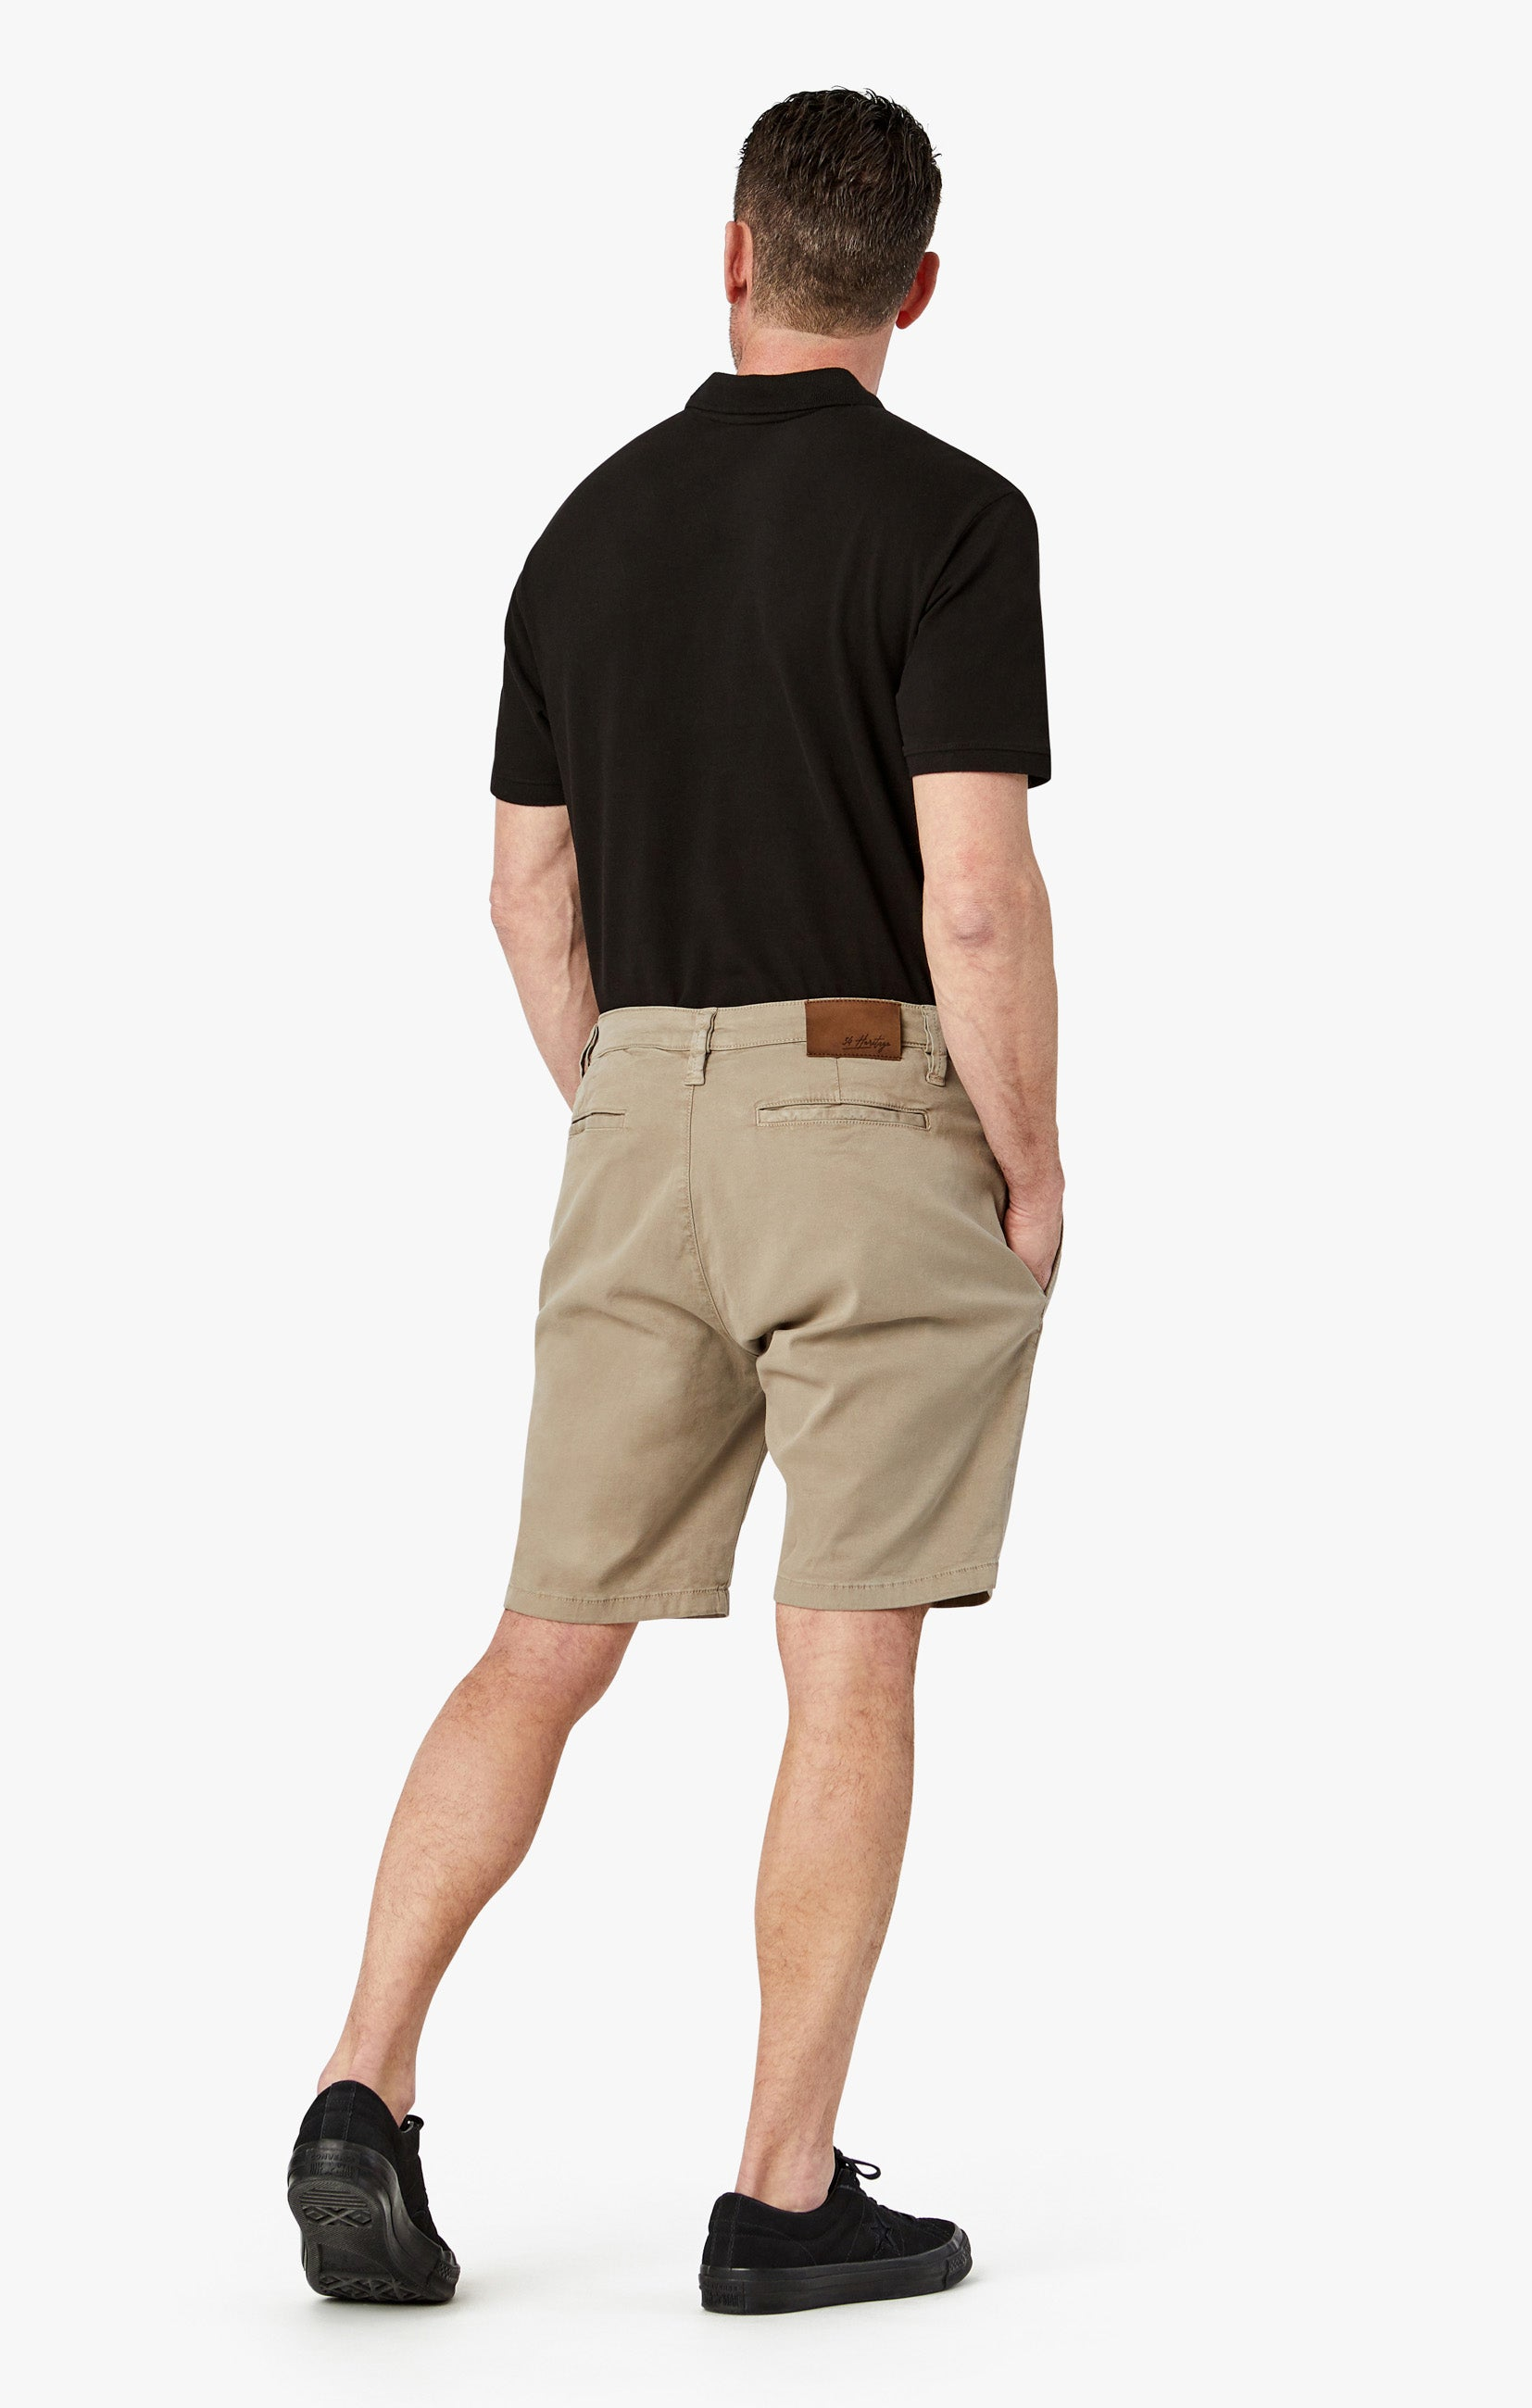 Nevada Shorts In Mushroom Soft Touch Image 6